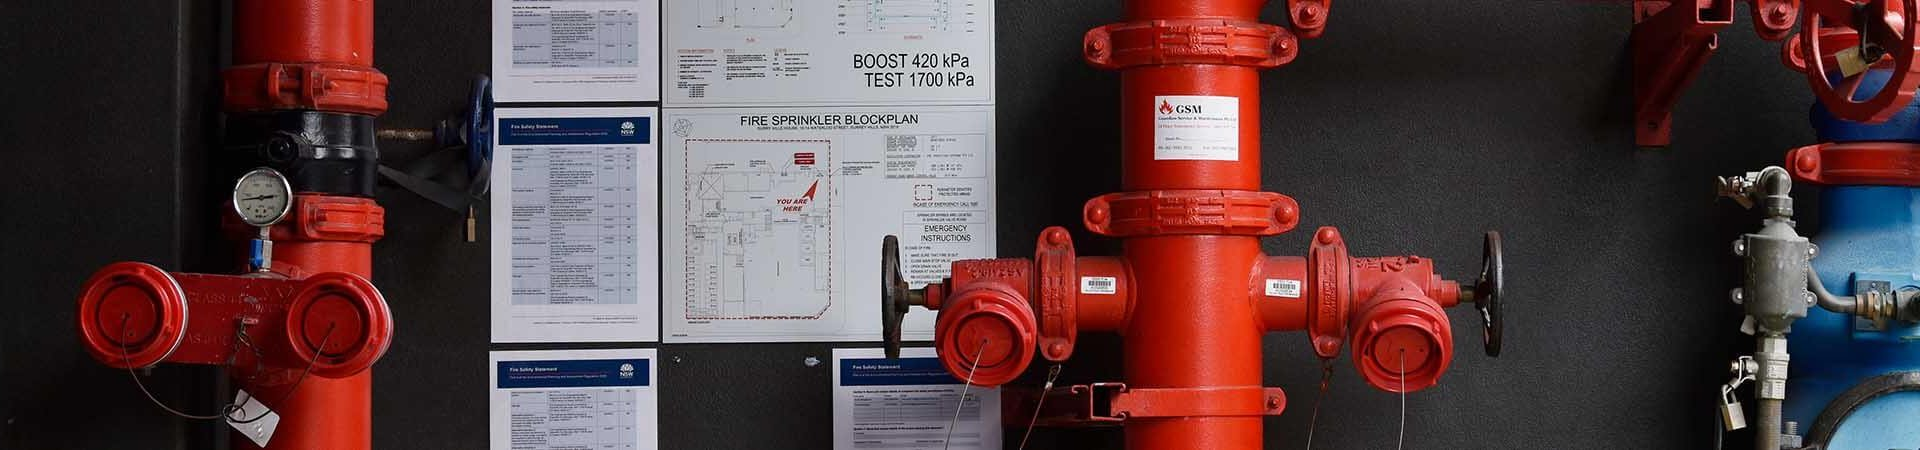 Annual Fire Safety Statements Certification Requirements